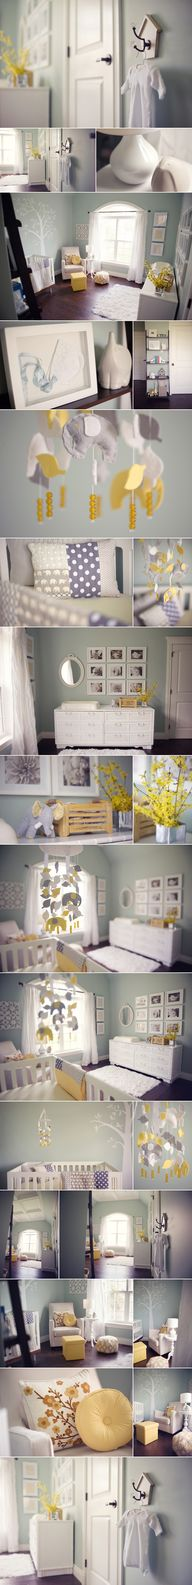 fabulous gray/yellow